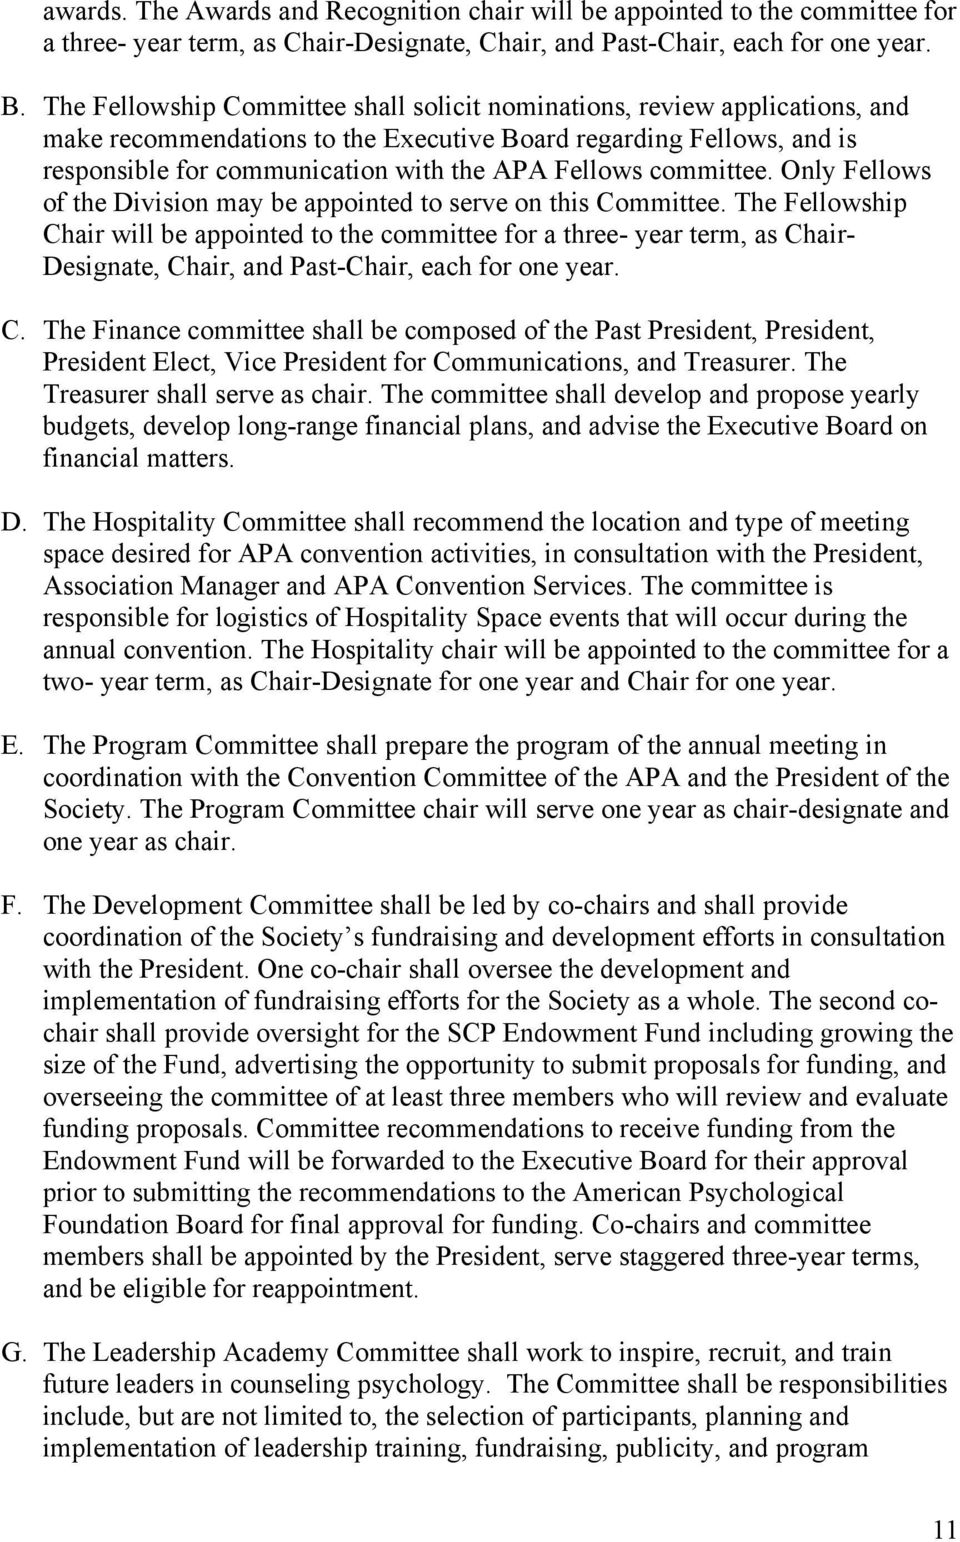 committee. Only Fellows of the Division may be appointed to serve on this Committee.